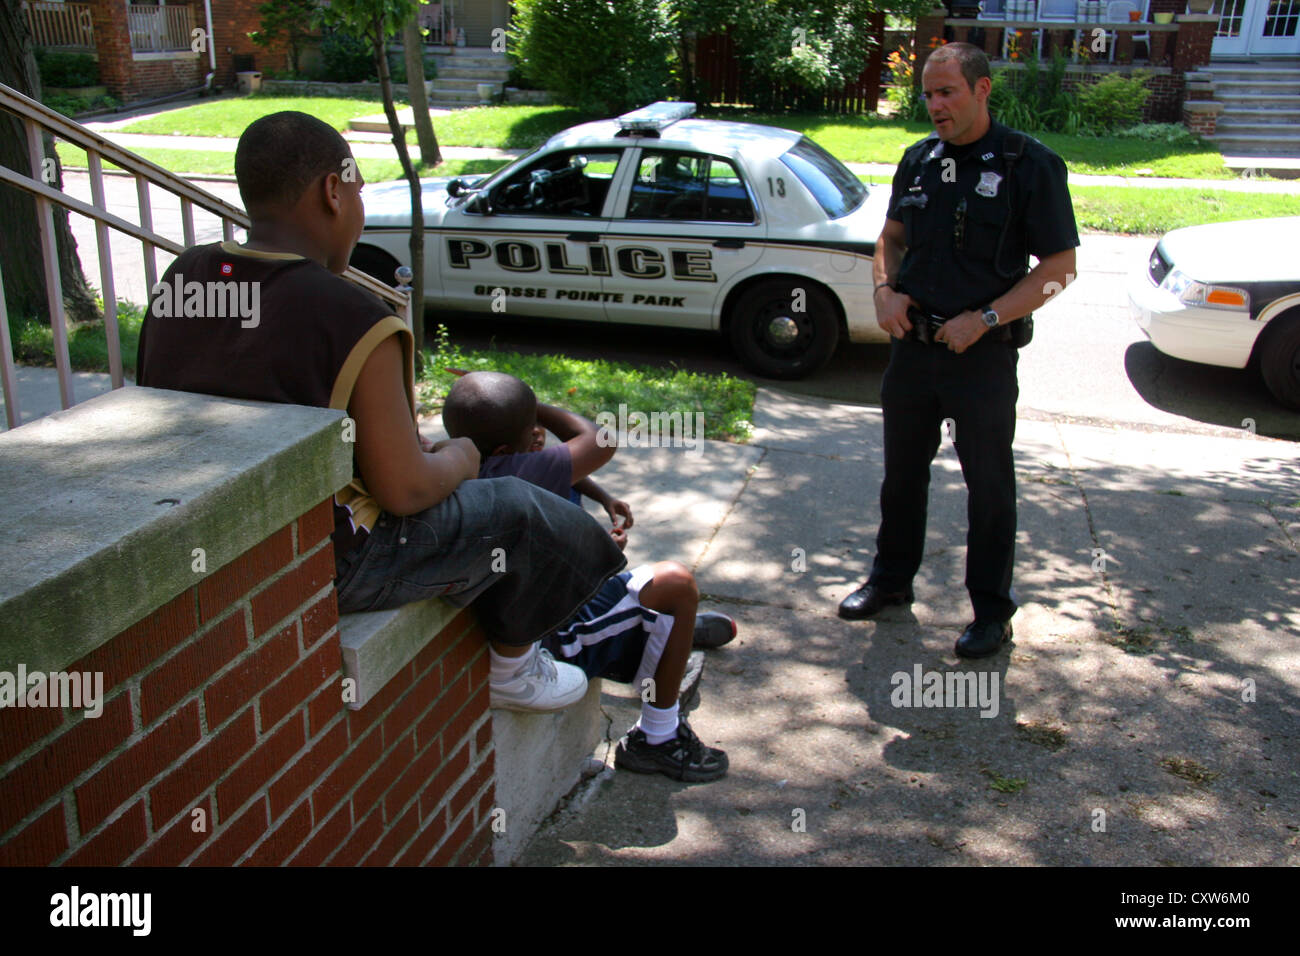 Cop in Grosse Pointe Park talking to youths, Michigan, USA - Stock Image